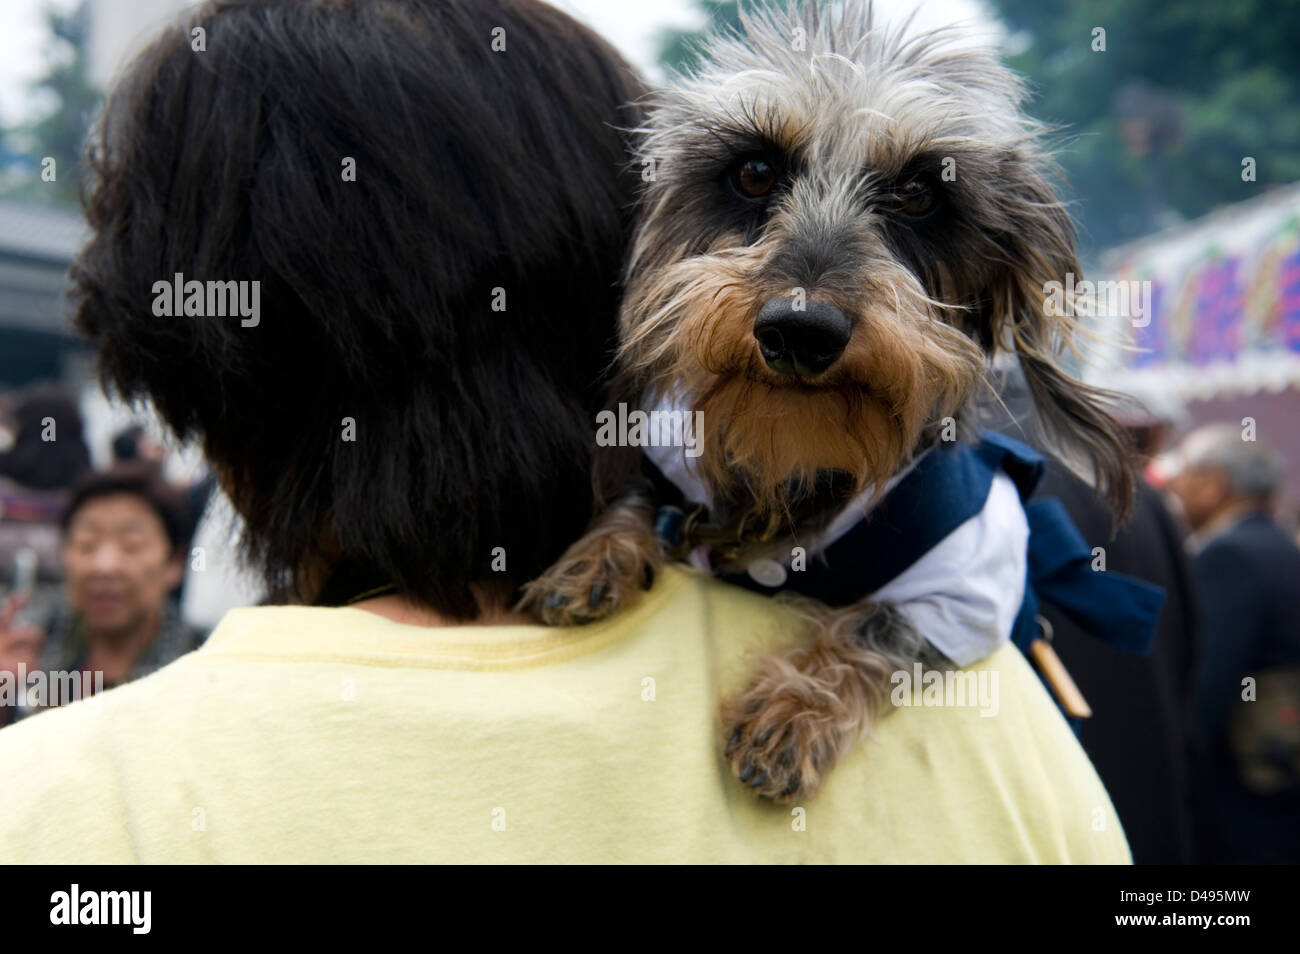 A dog, being carried on the shoulder of a pet owner in Japan, seems curious about having his picture taken. - Stock Image